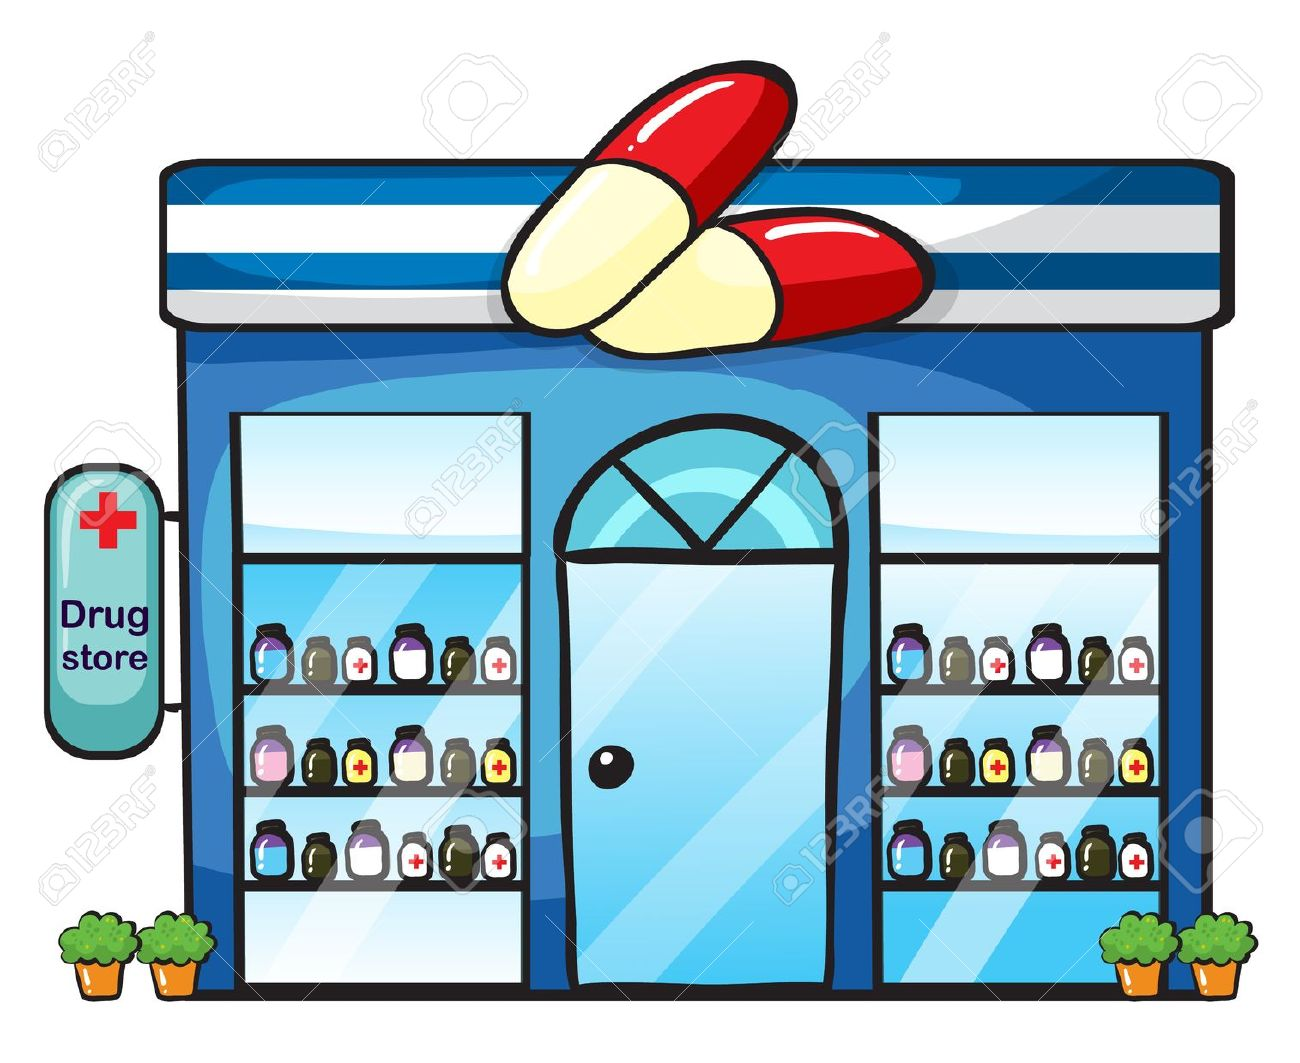 Pharmacy Store Clipart.